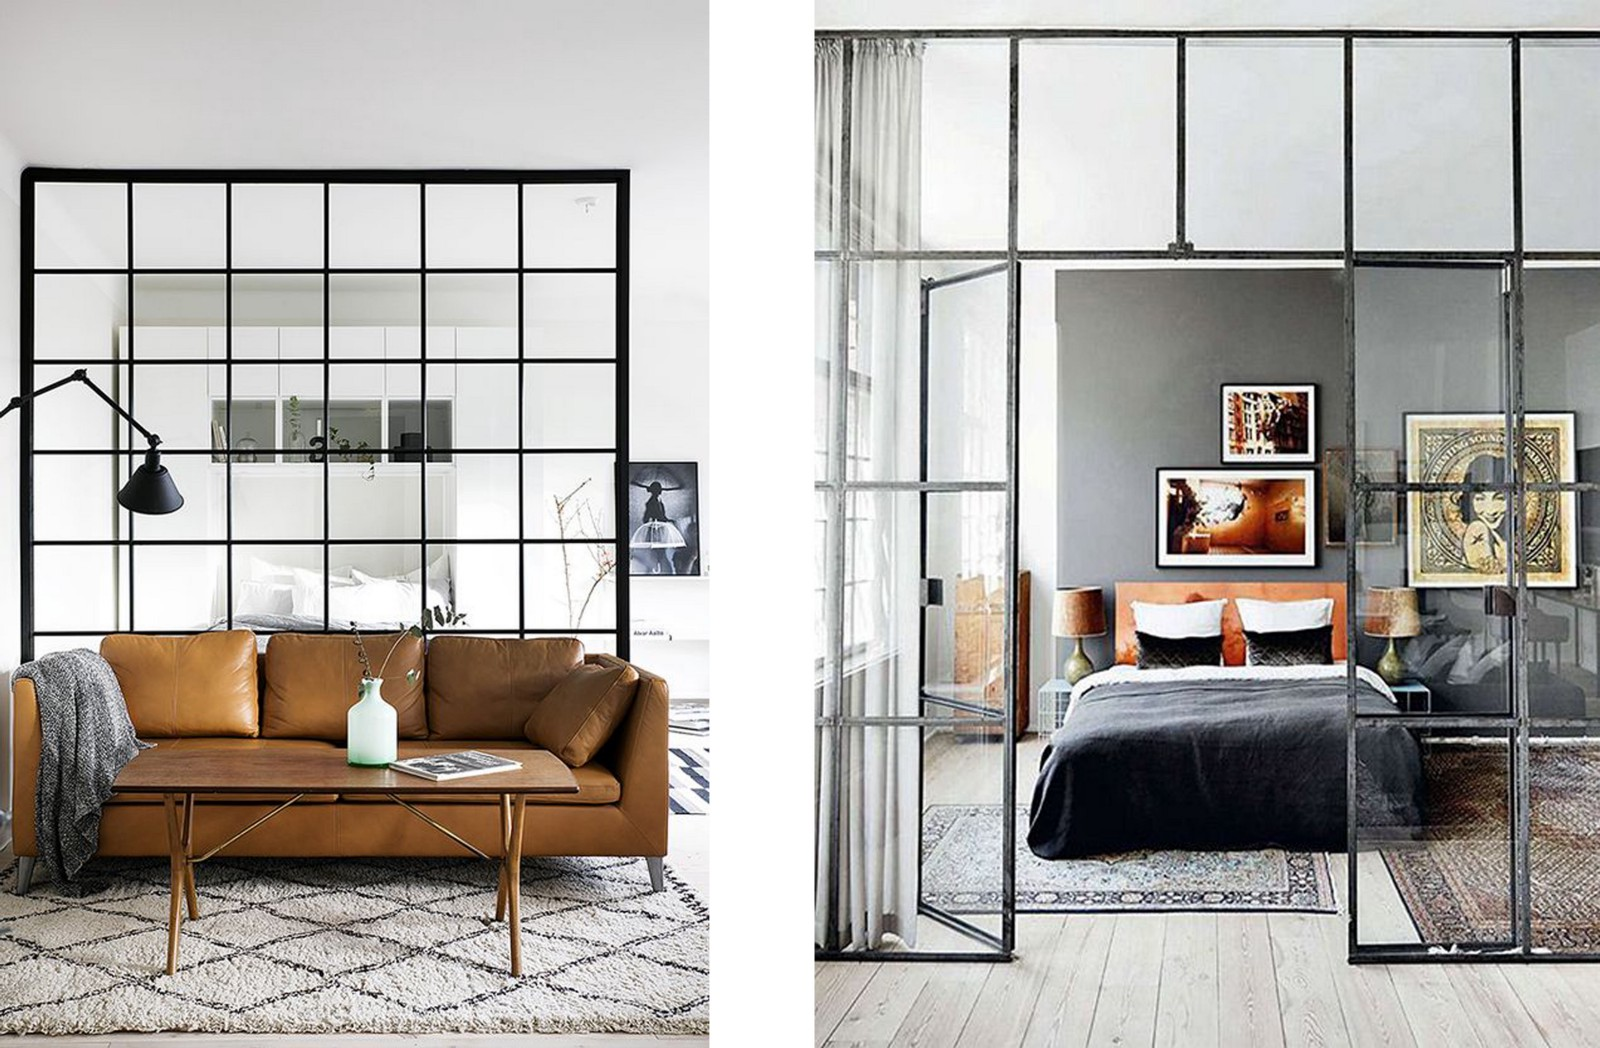 Glass Partition in the Interior – Basics of Interior Design – Medium